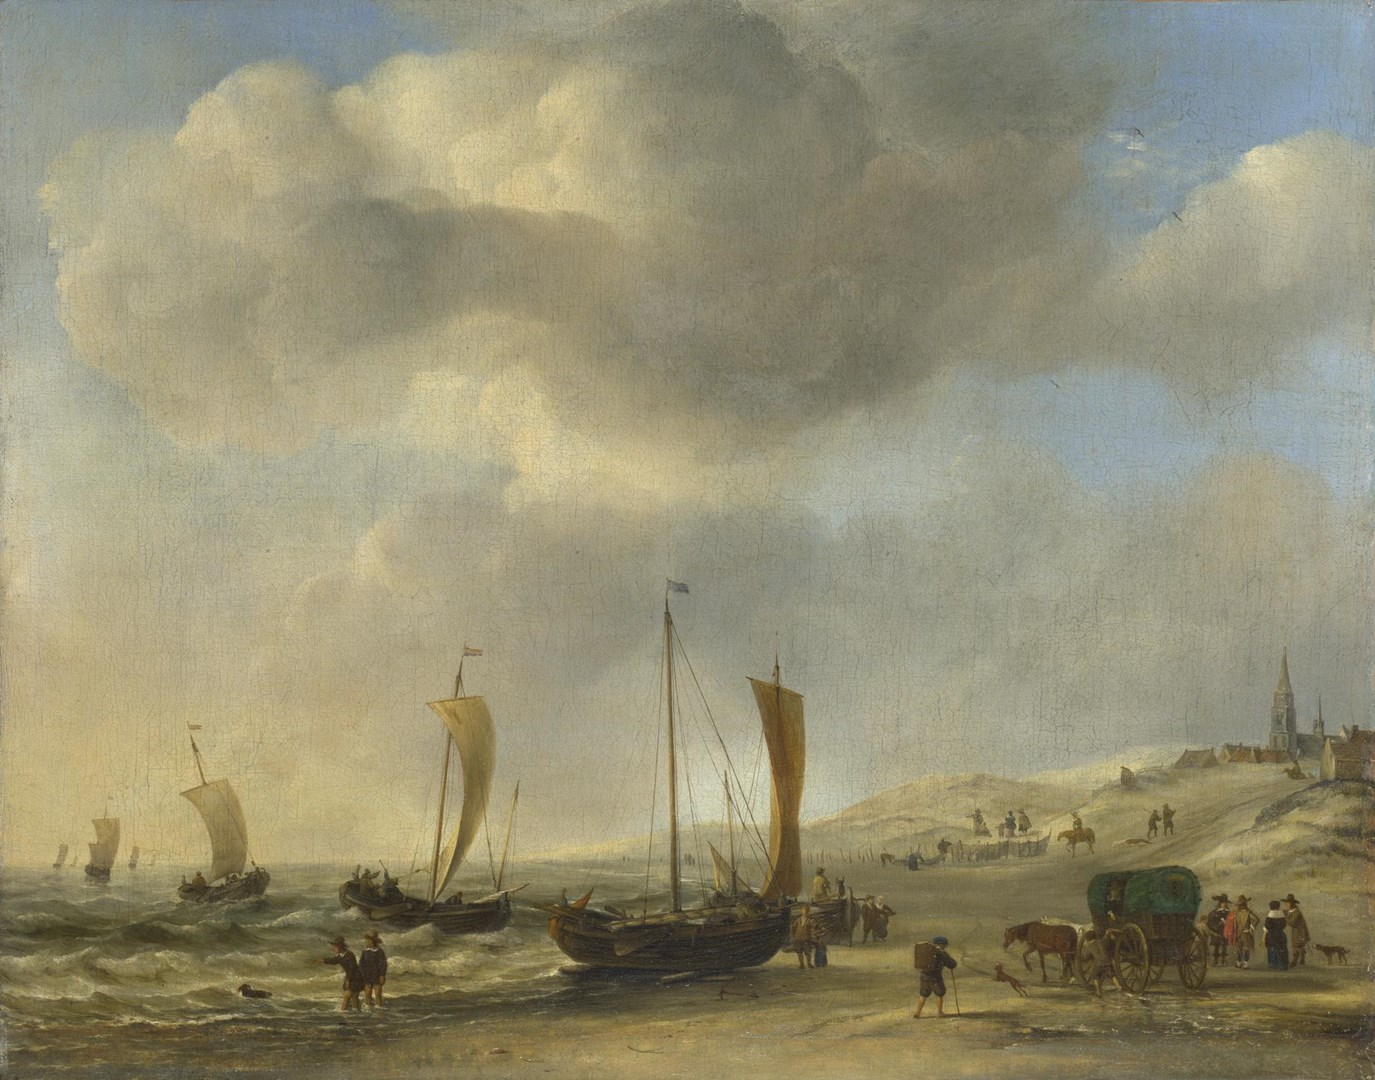 The Shore at Scheveningen by Willem van de Velde